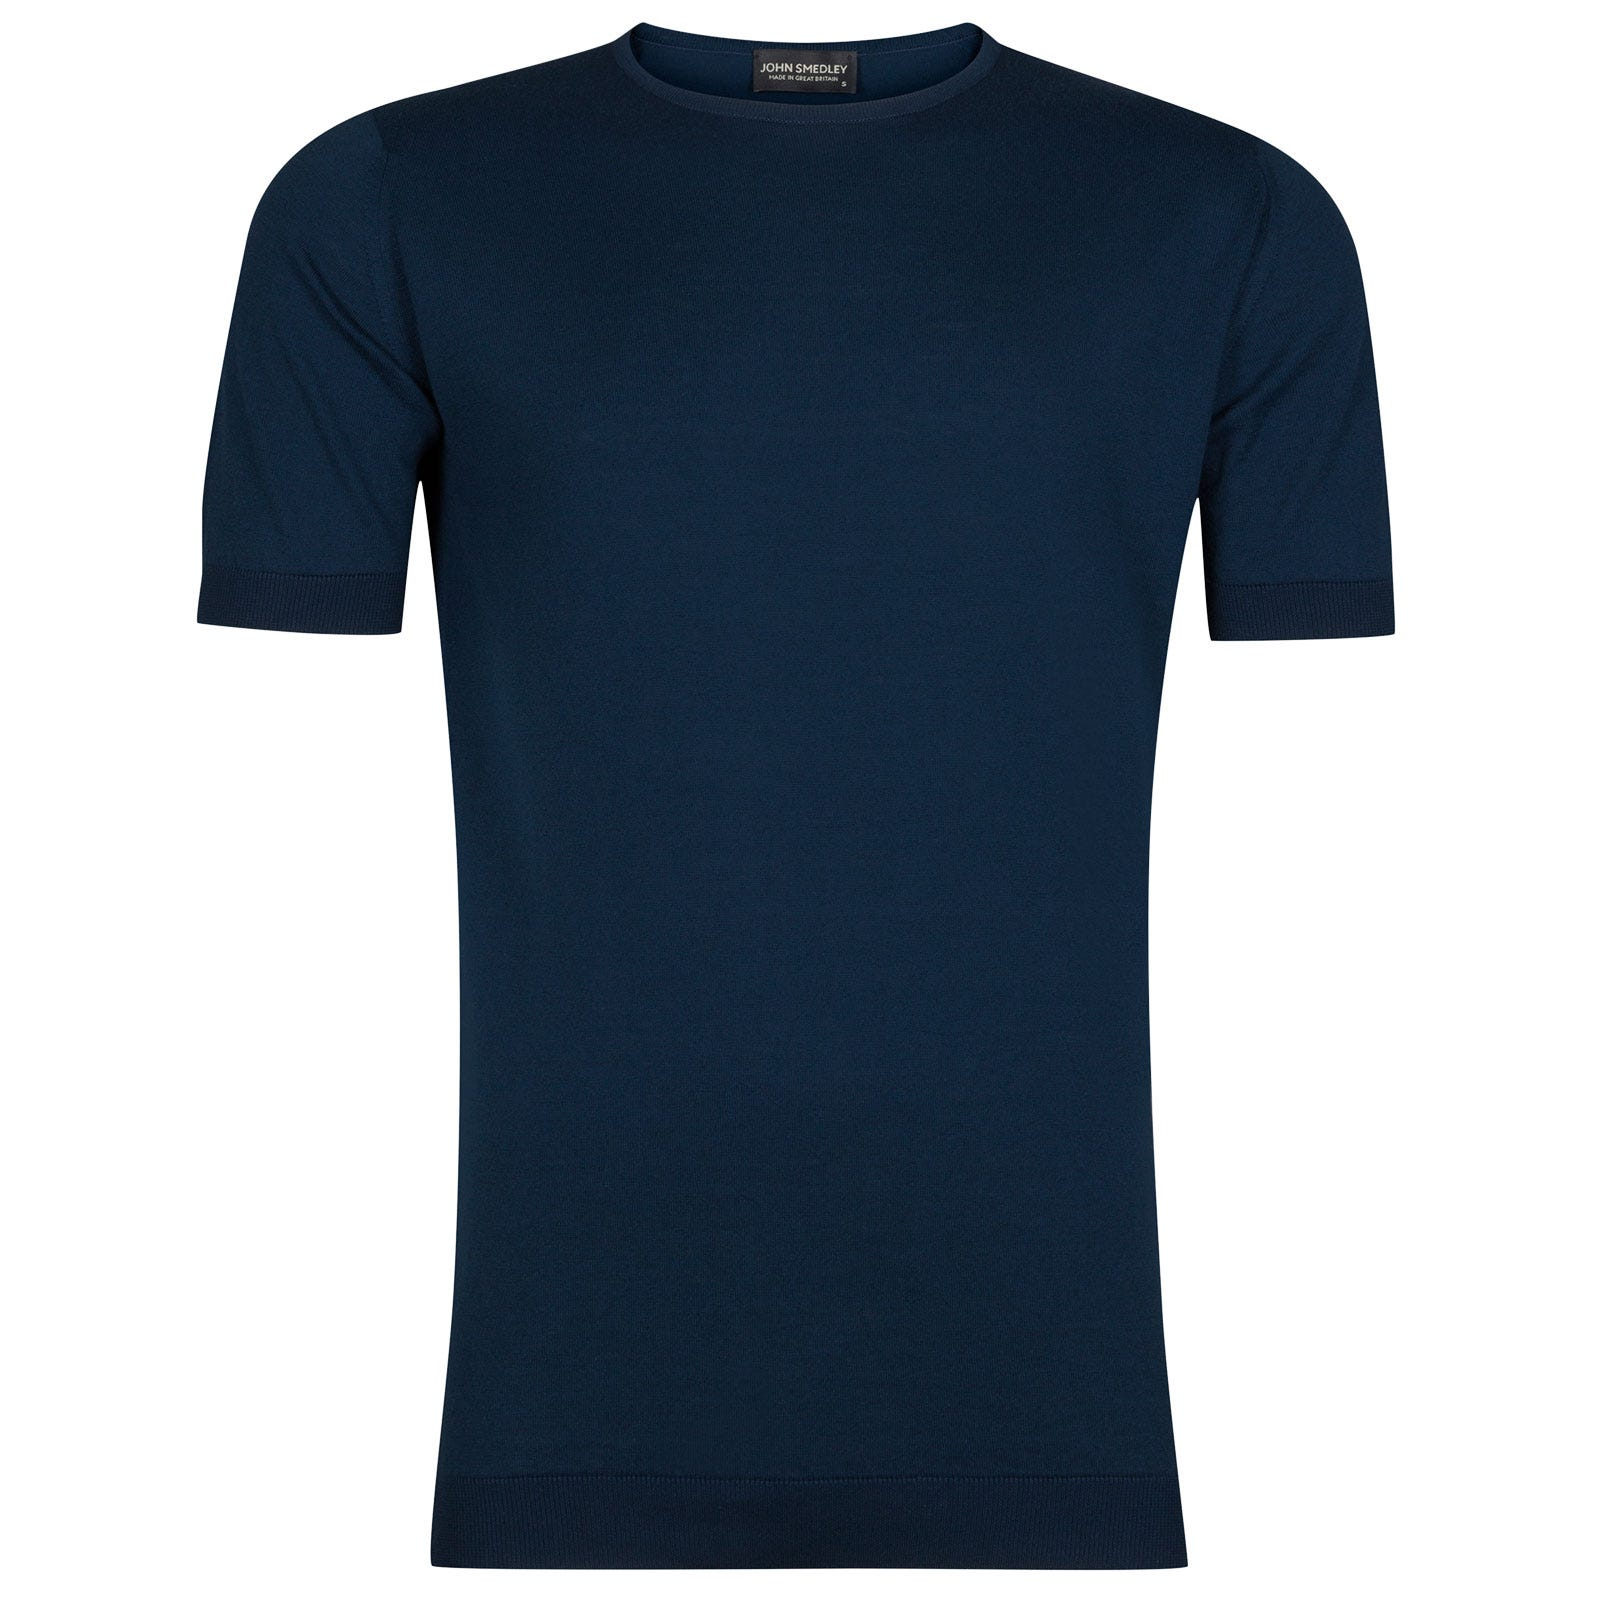 John Smedley belden Sea Island Cotton T-shirt in Indigo-M